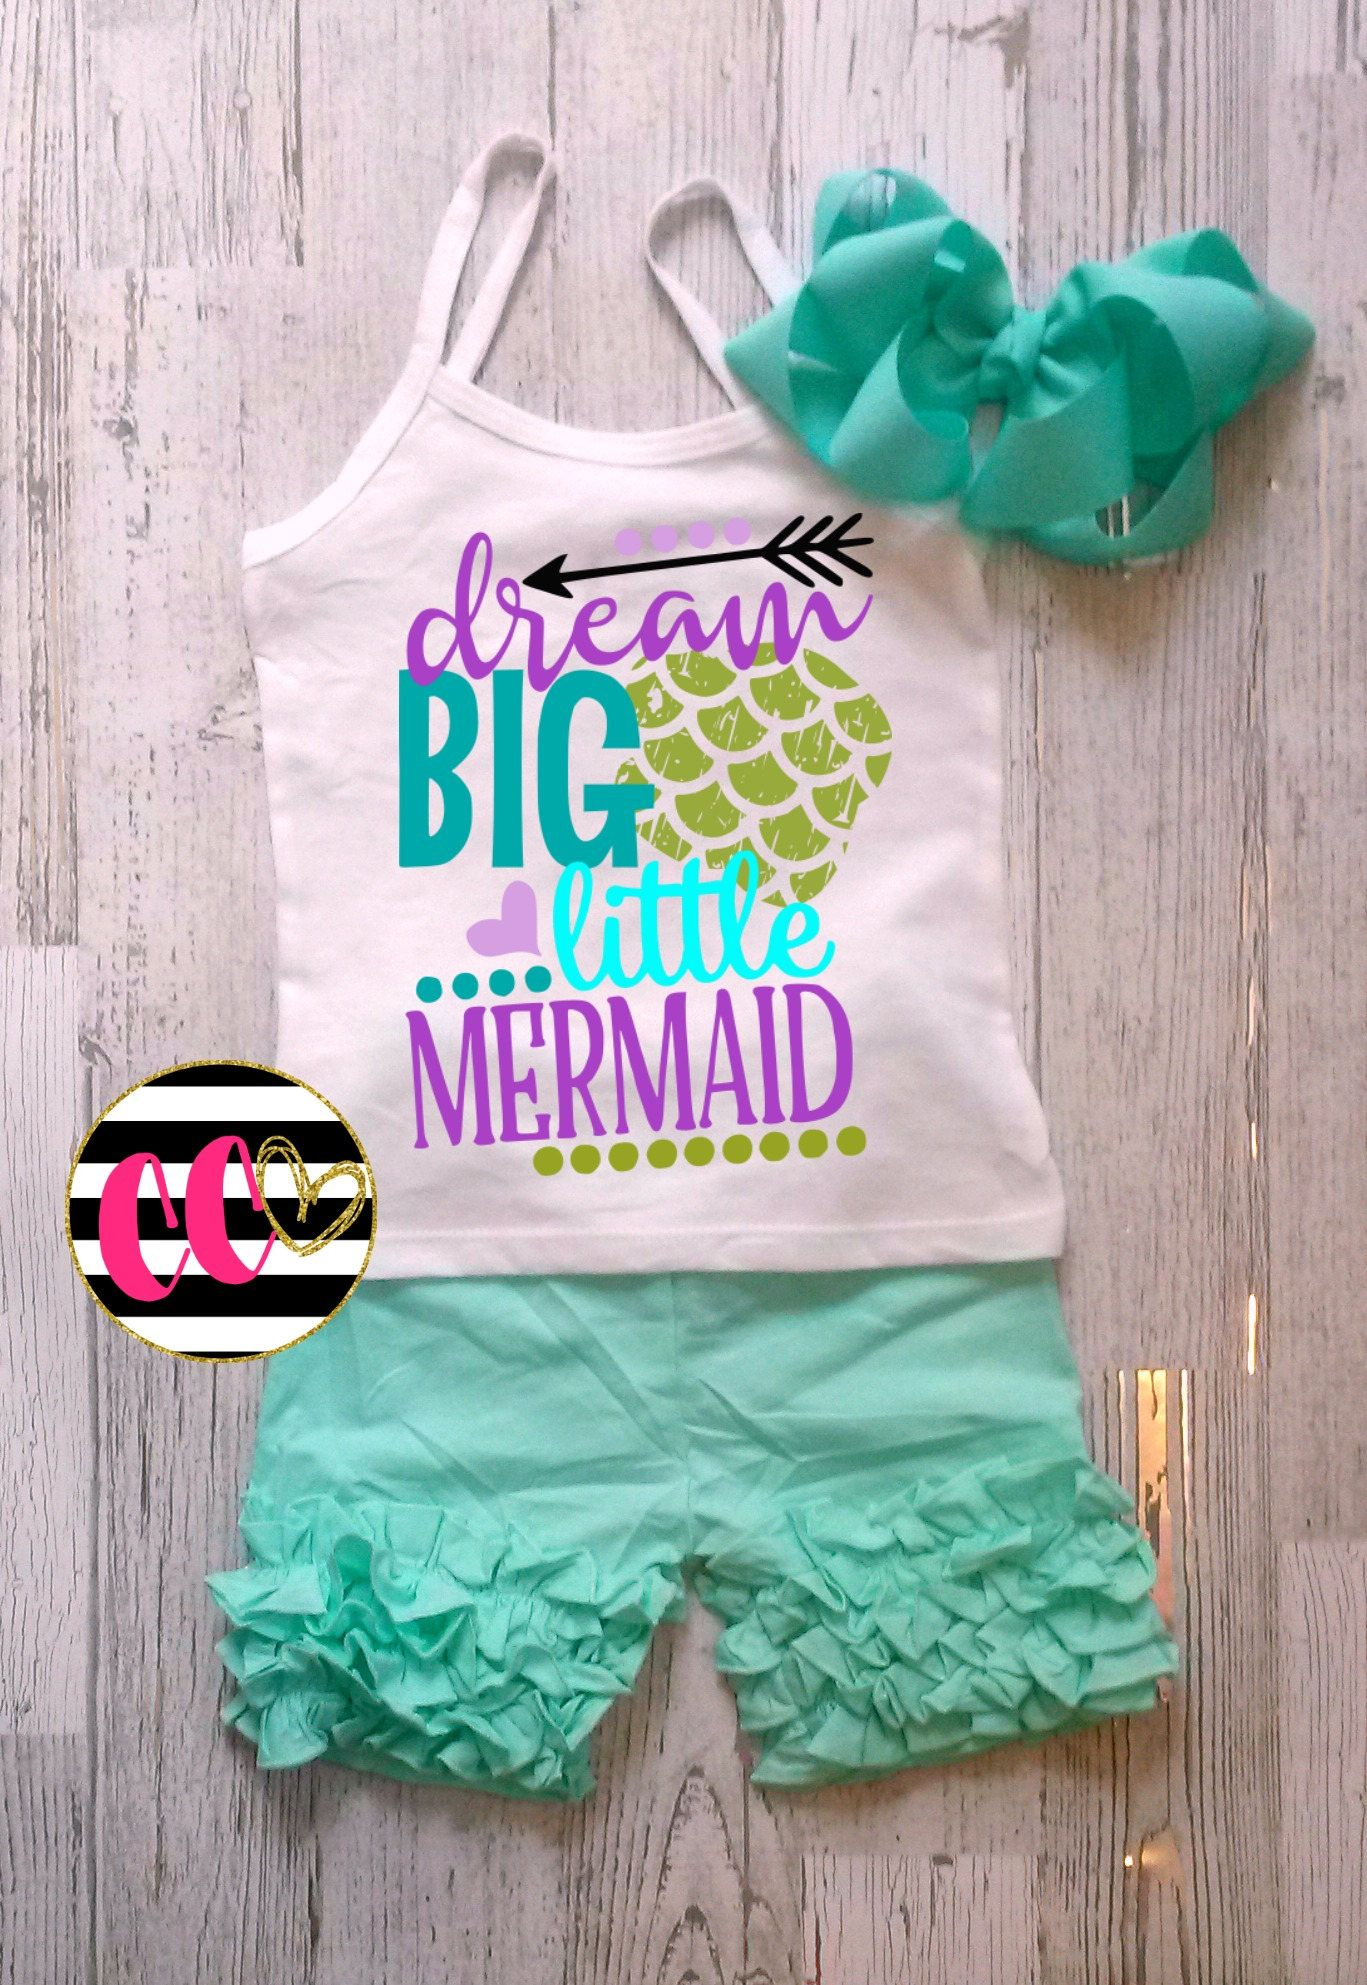 df6cd8e2dbe6 dream big little mermaid.baby girl.mermaid outfit. birthday set.first  birthday.vacation outfit by ChubbyOCheeks on Etsy